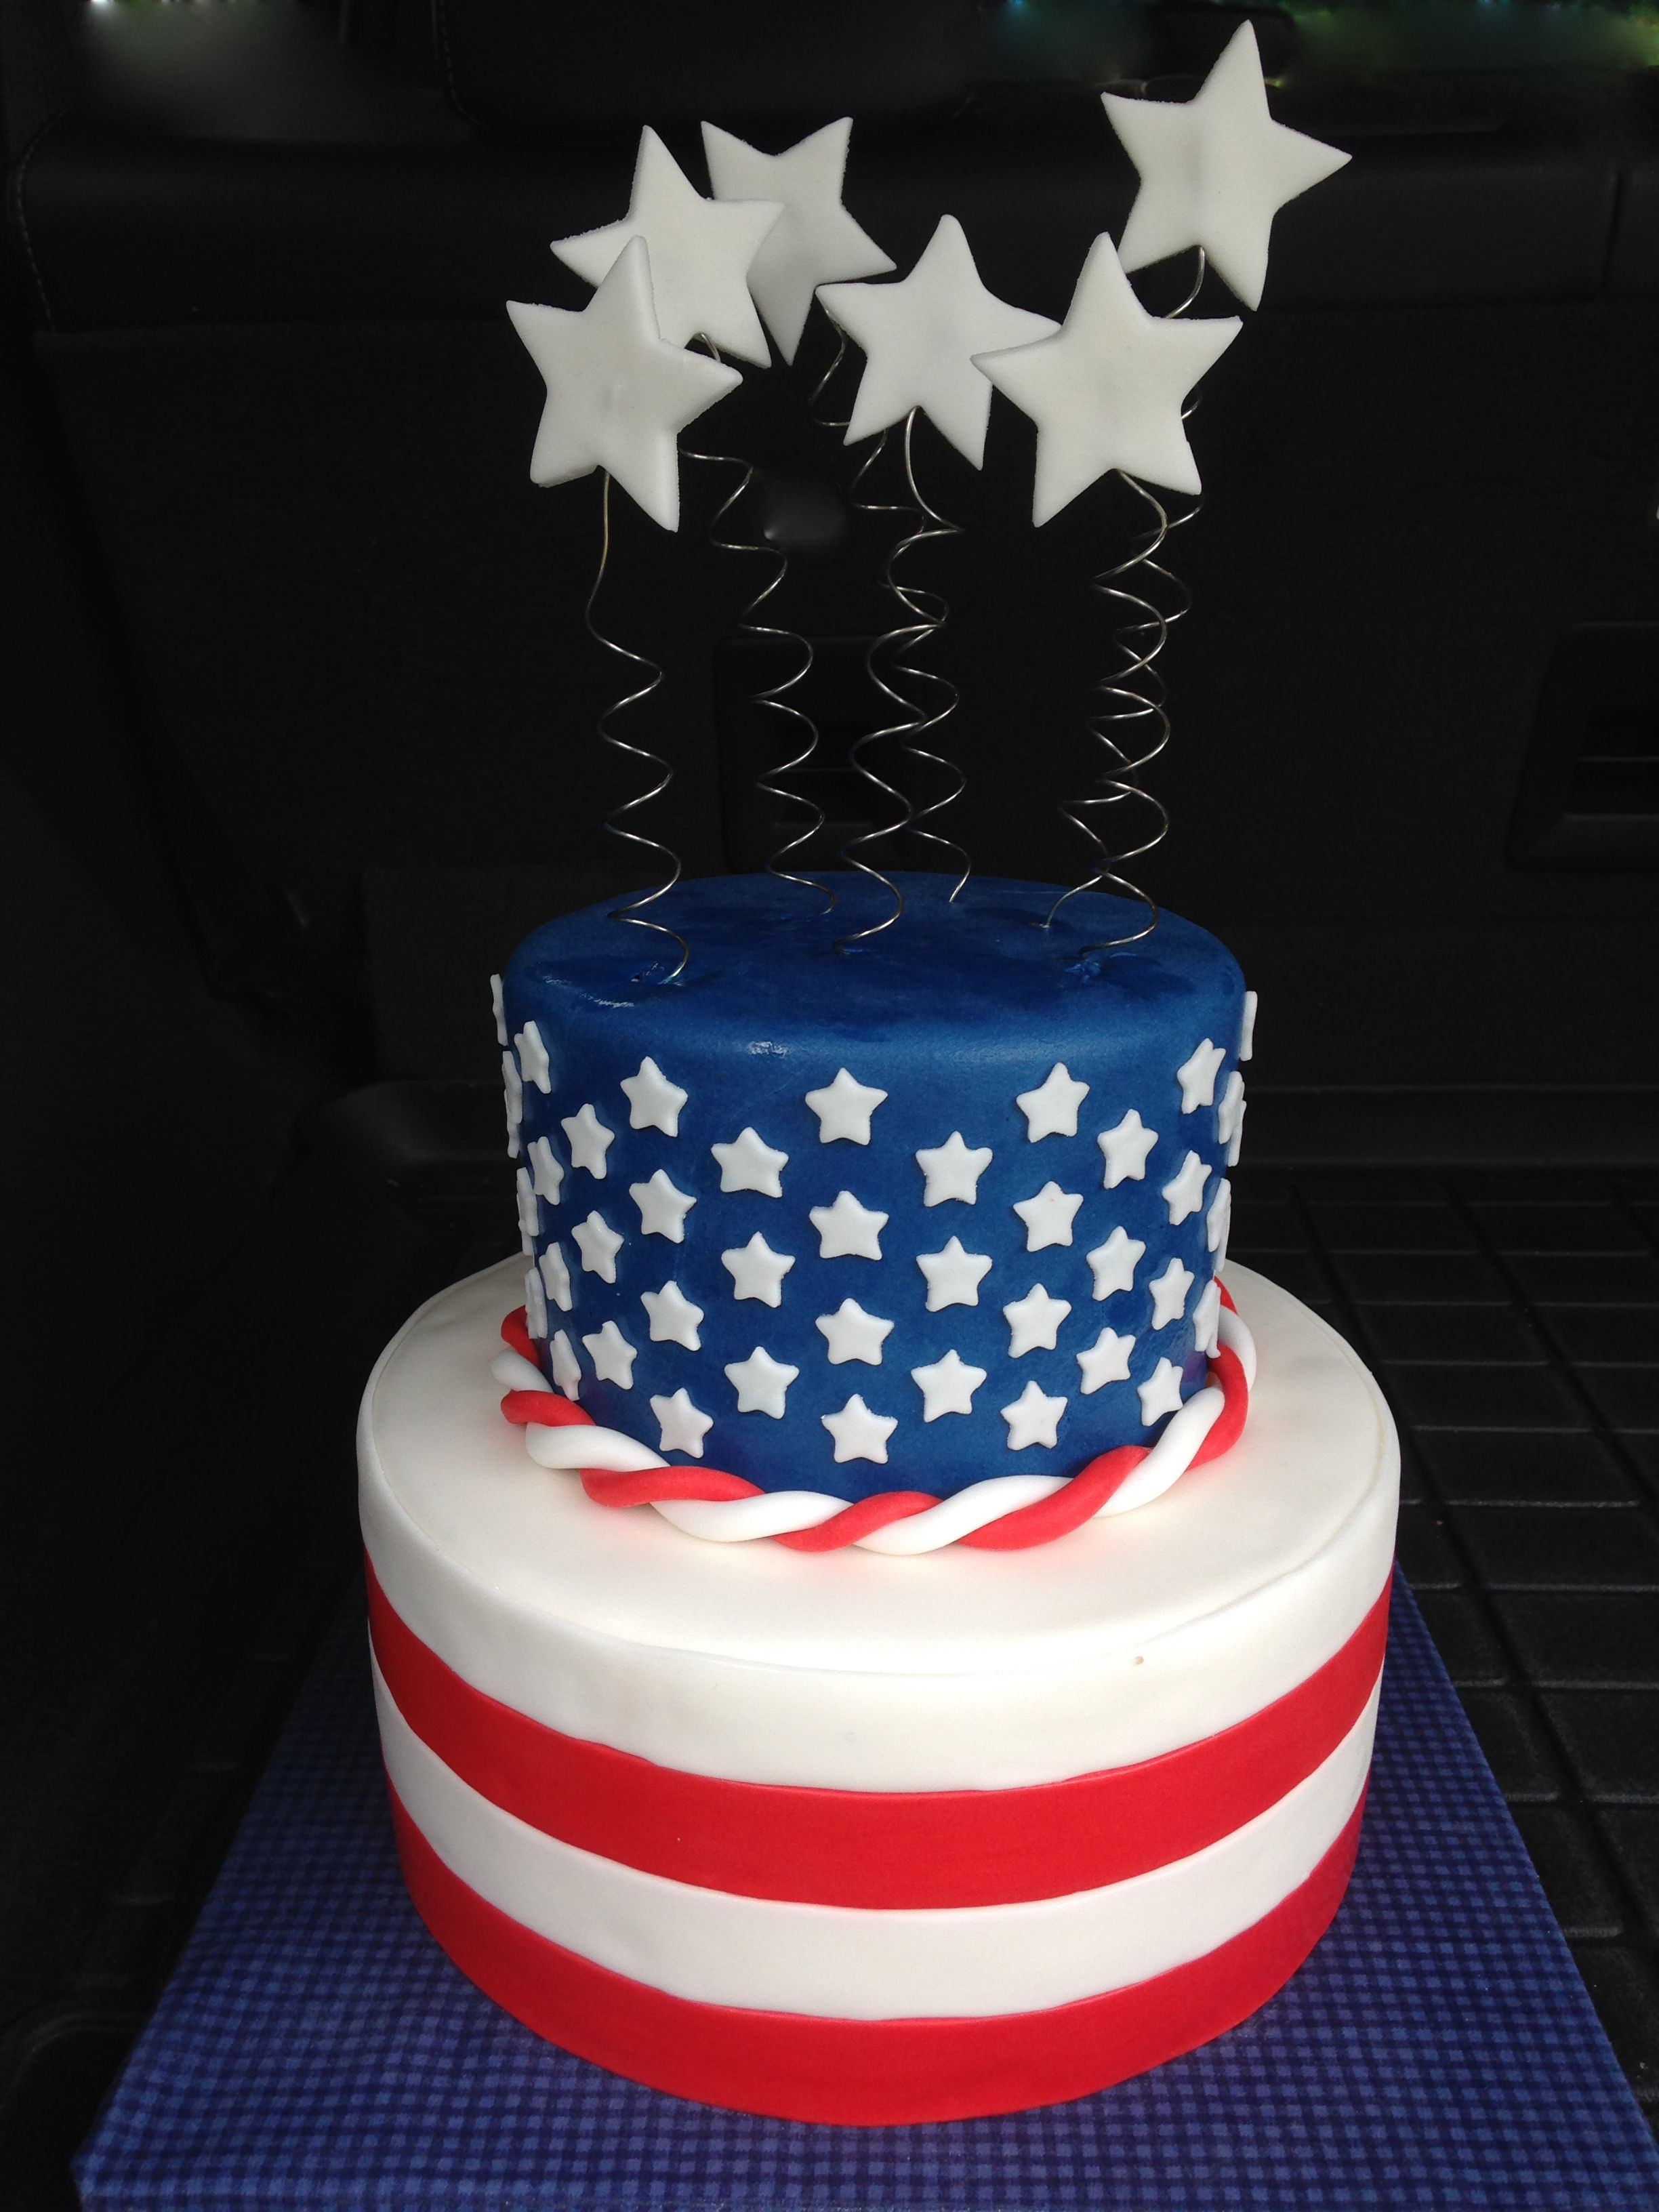 American Flag Cake Cakes Pinterest Flag Cake Flags And Cake